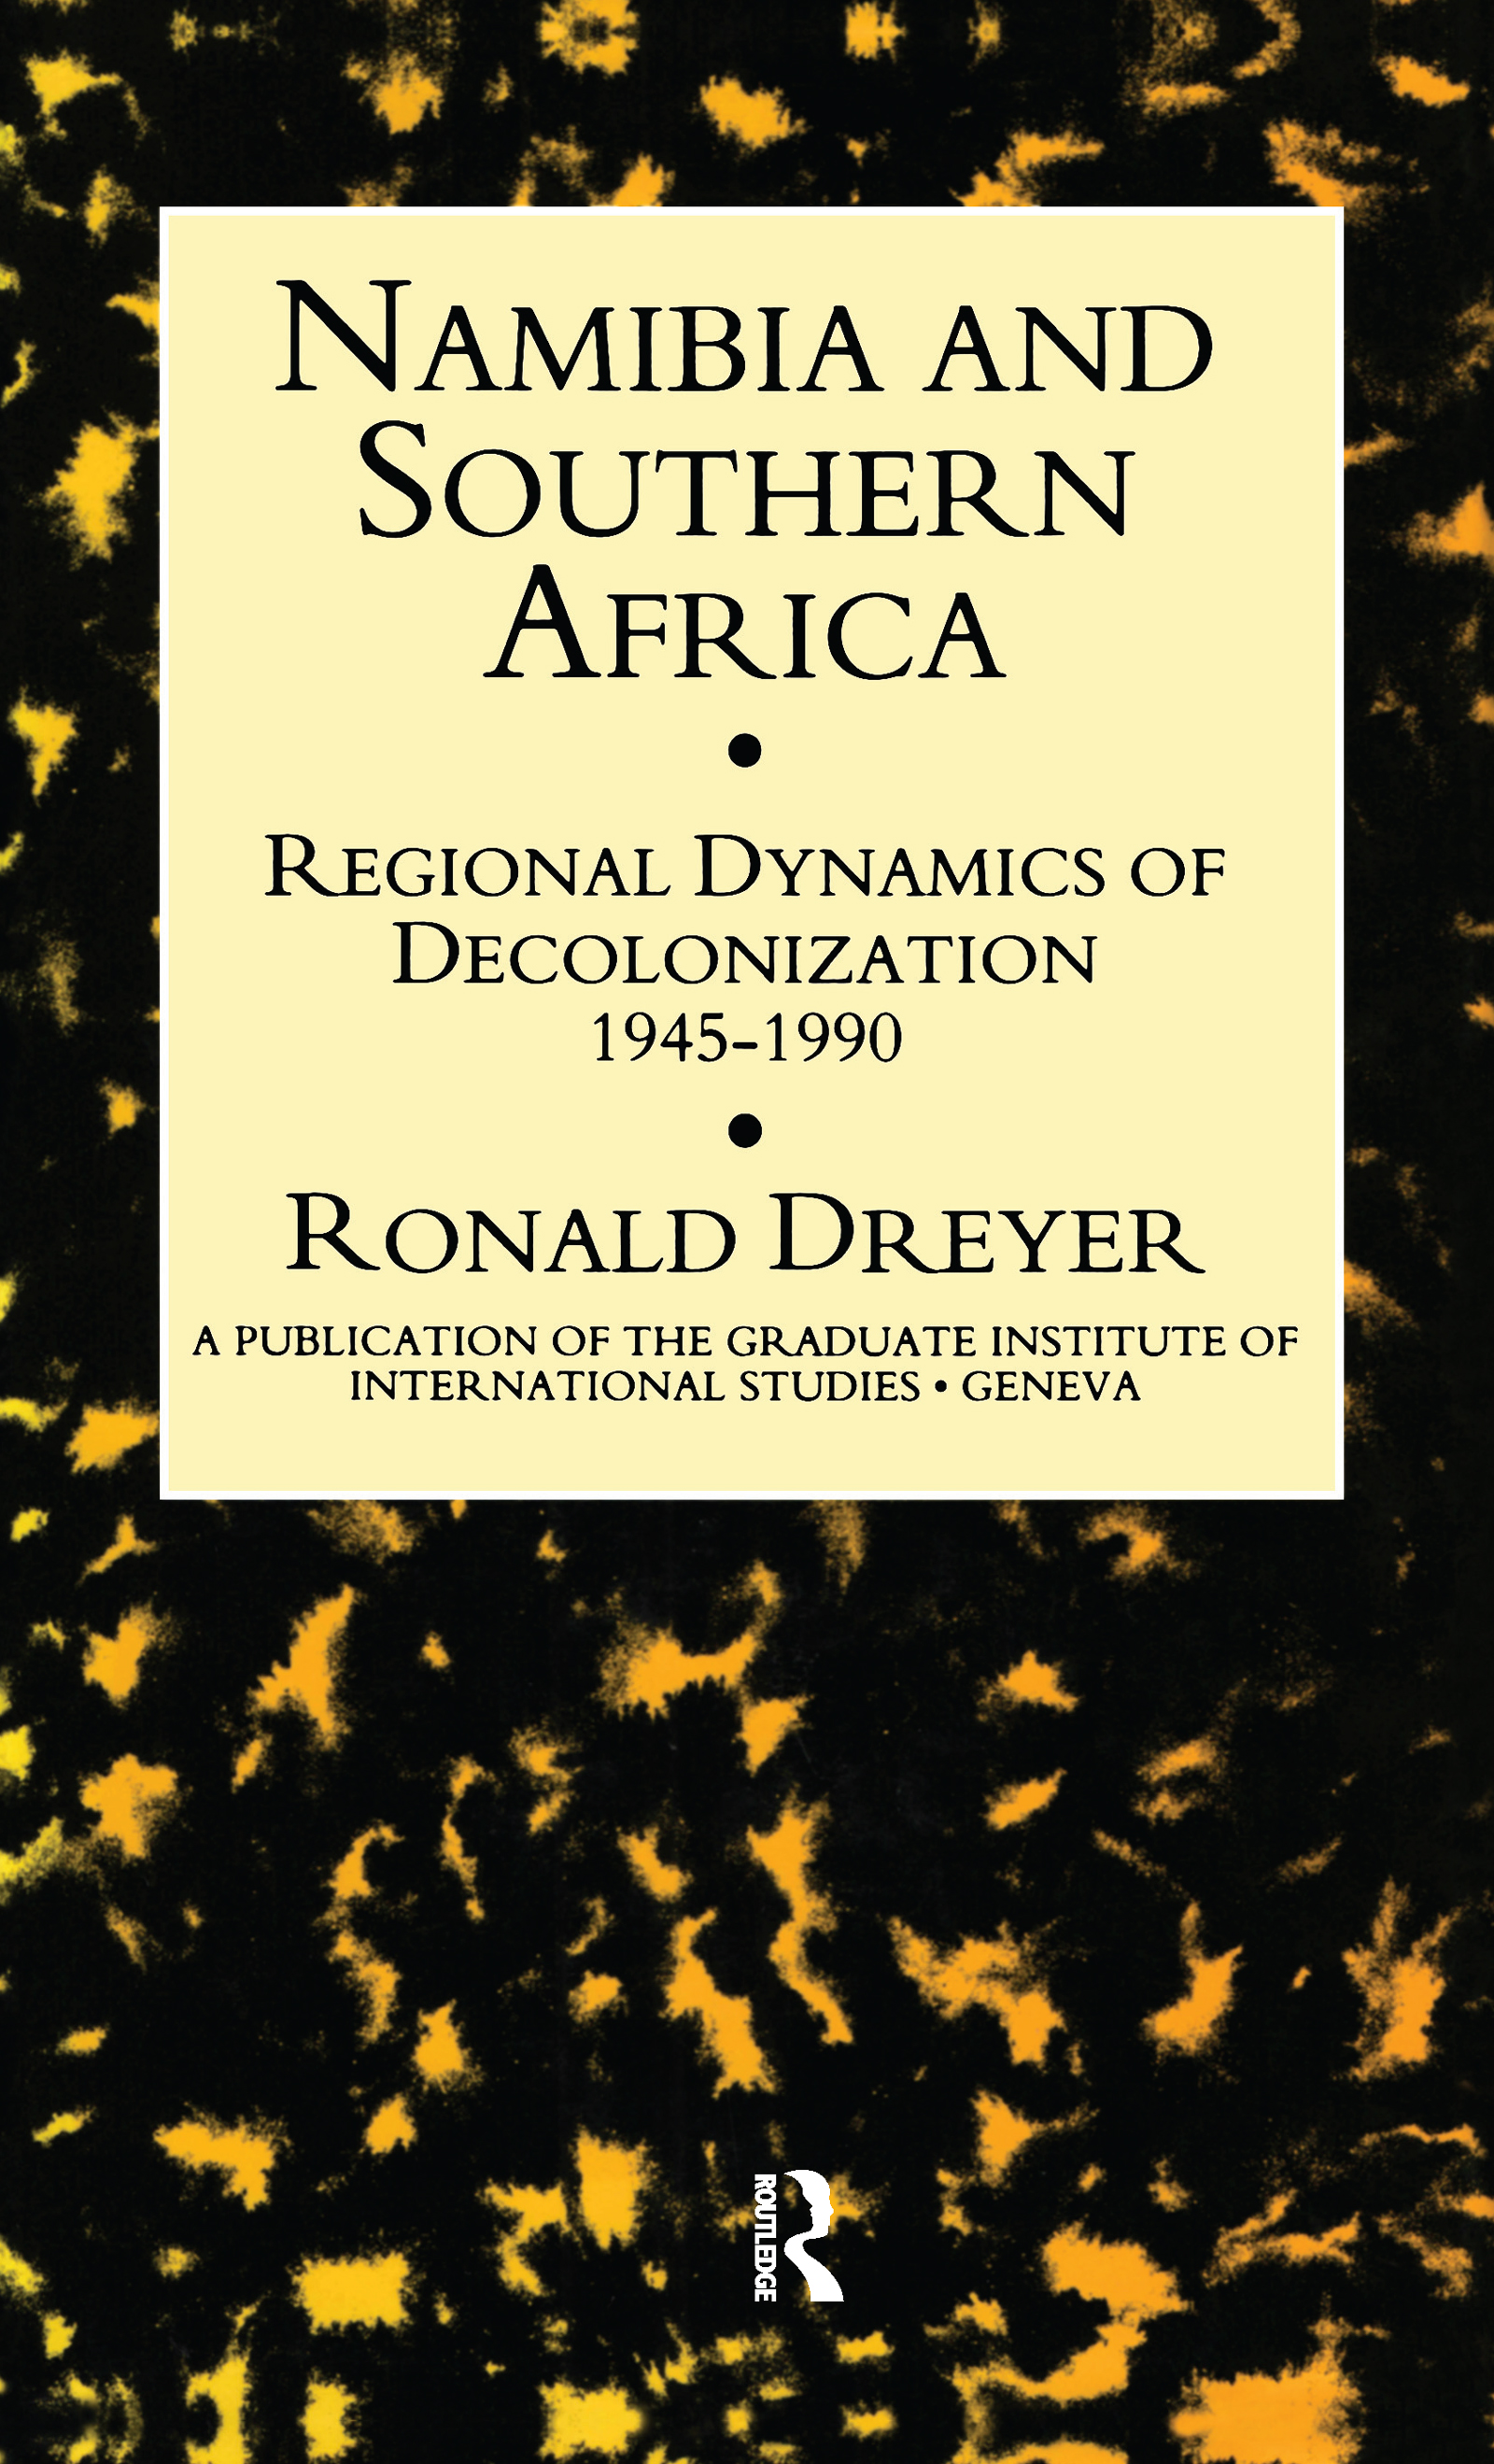 REGIONAL DYNAMICS OF NEGOTIATIONS. THE FRONTLINE STATES AND NAMIBIA. 1976-81